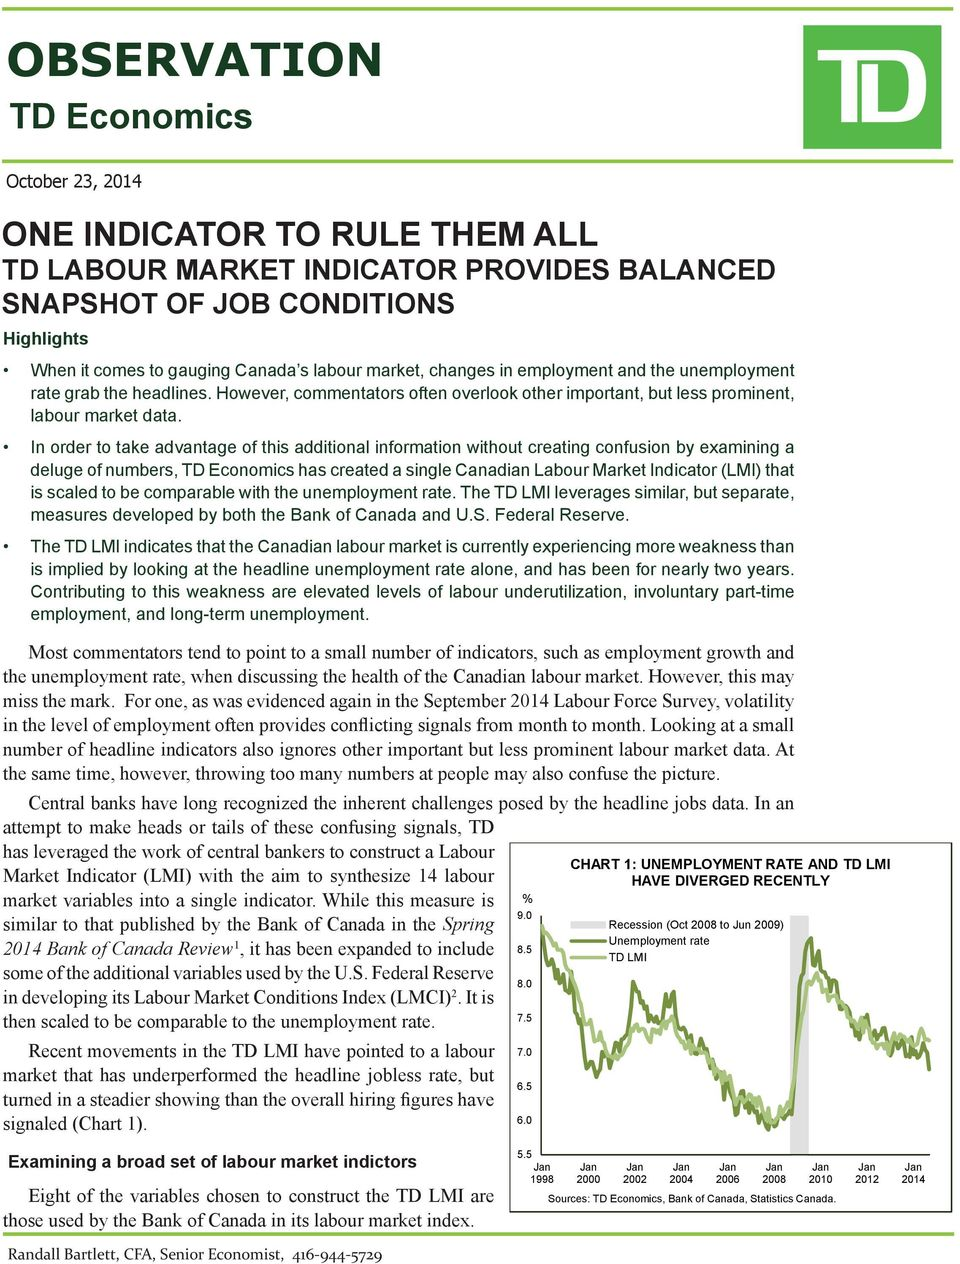 In order to take advantage of this additional information without creating confusion by examining a deluge of numbers, TD Economics has created a single Canadian Labour Market Indicator (LMI) that is